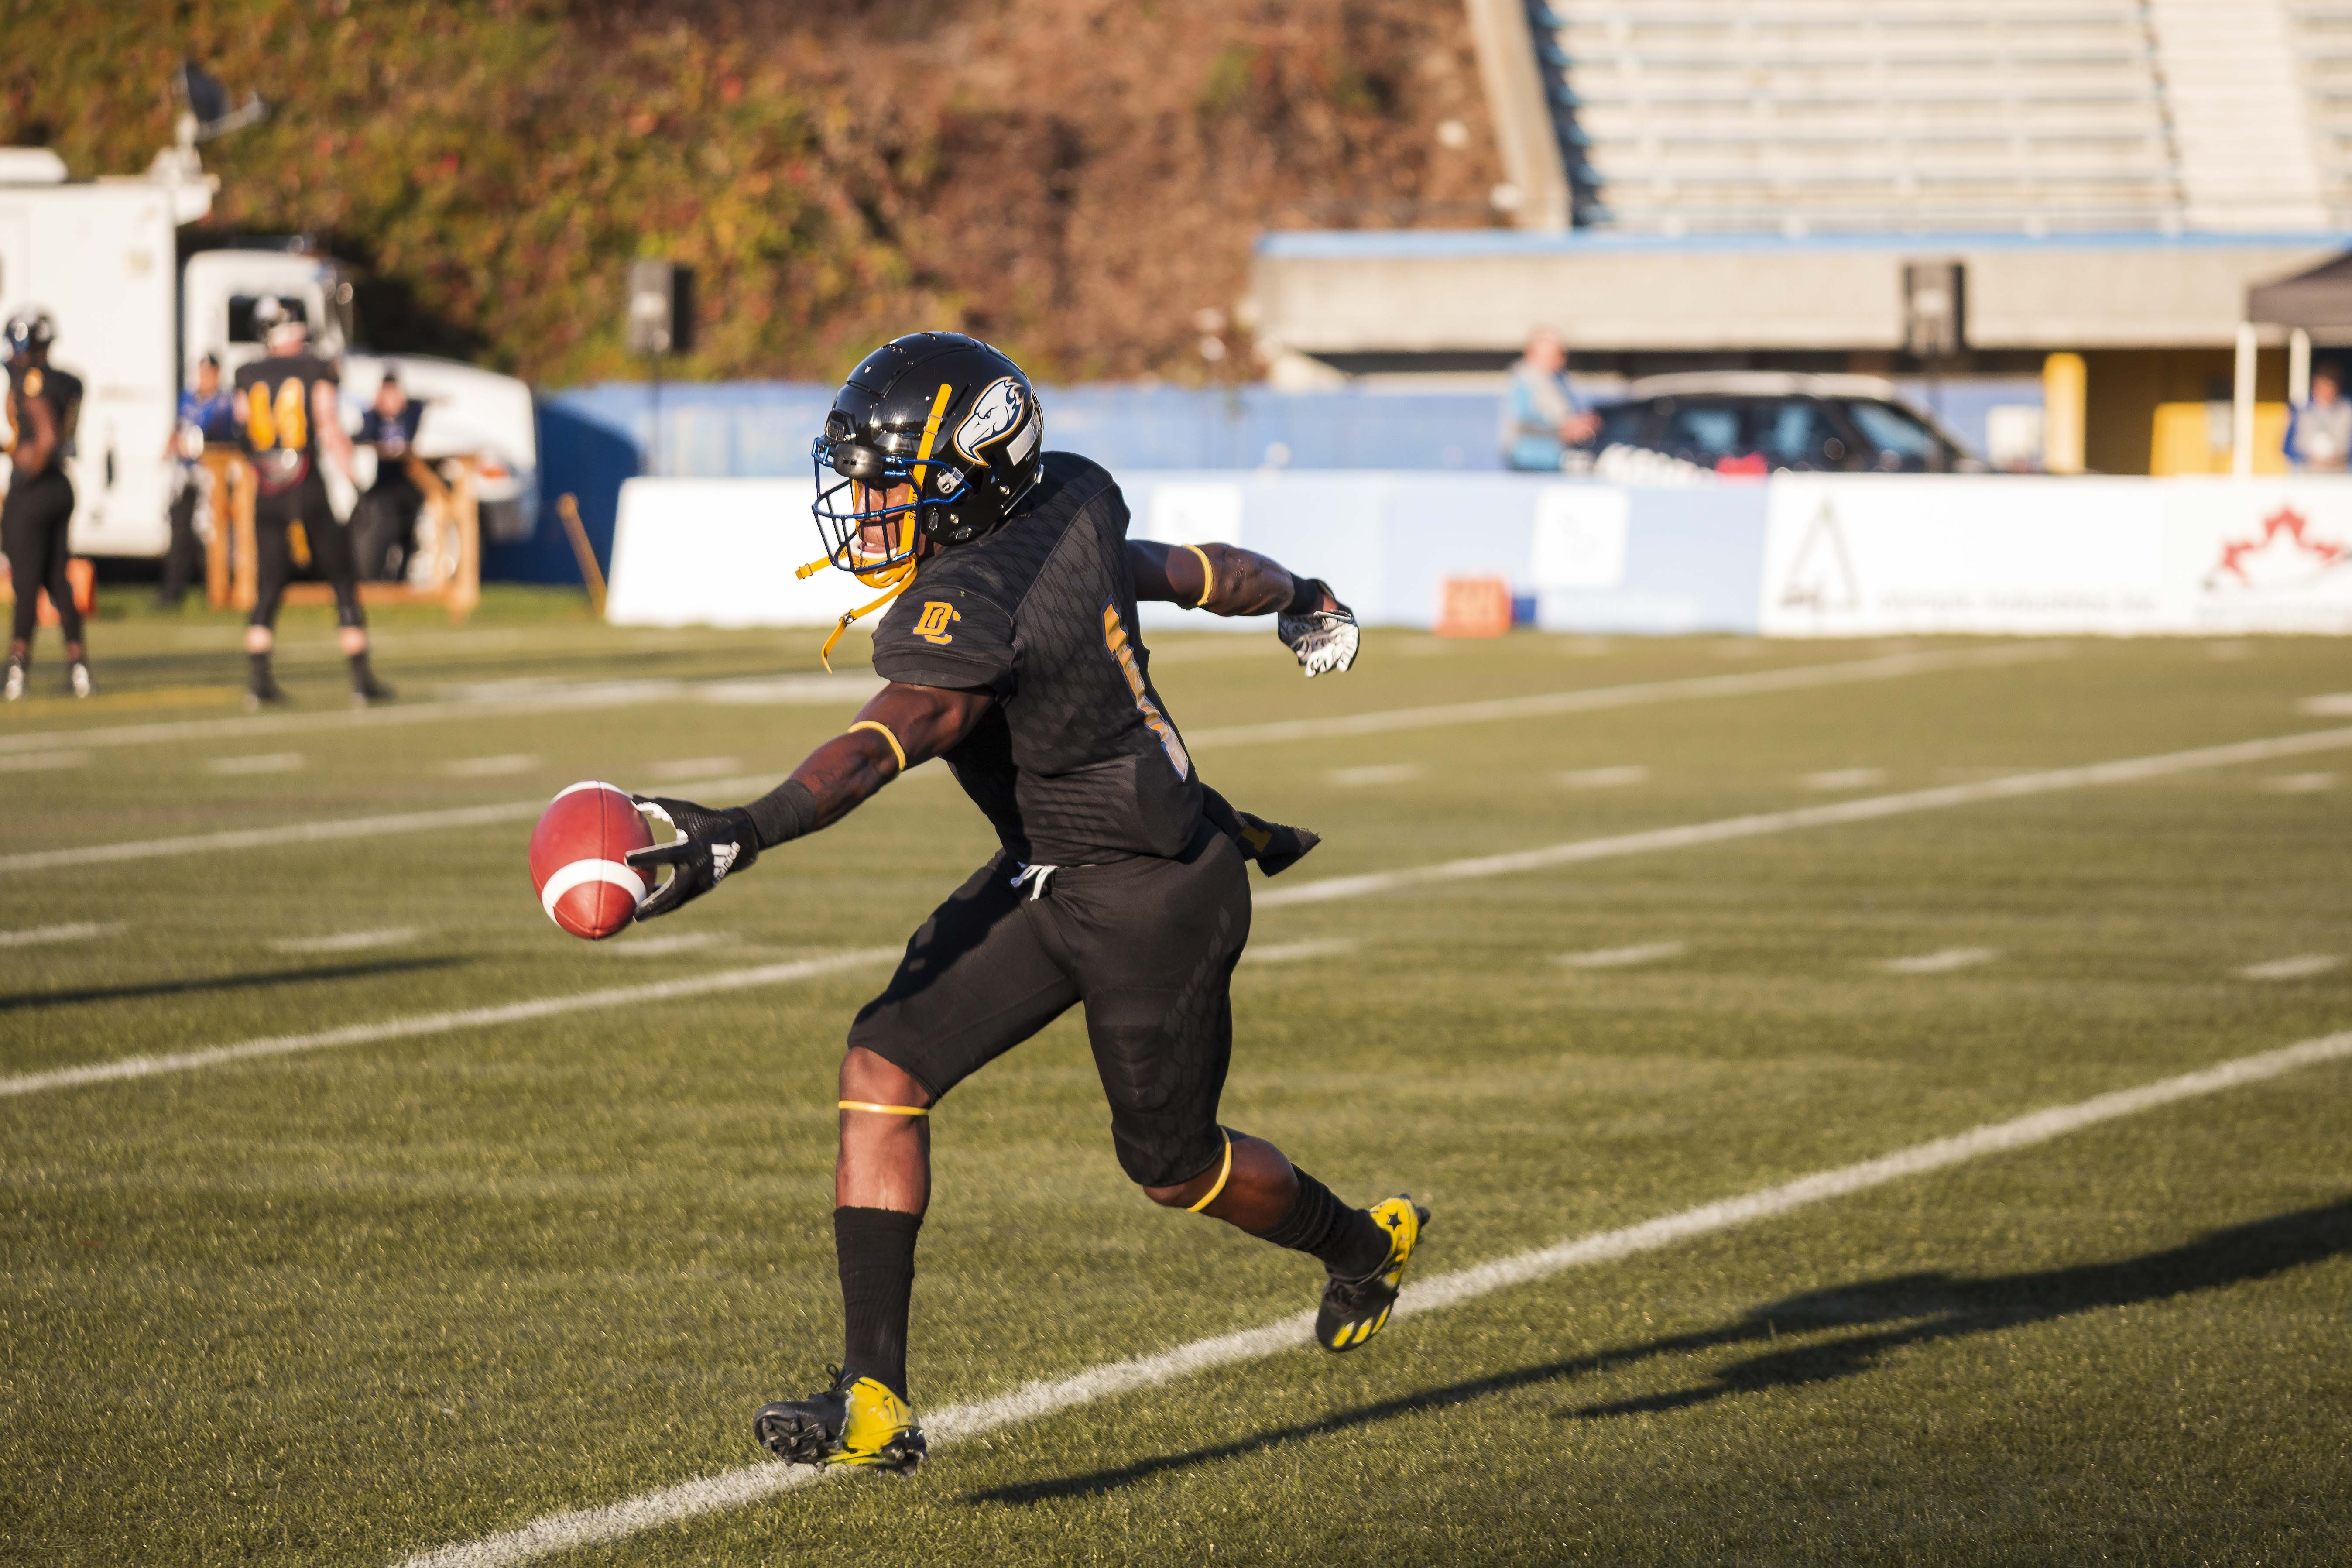 Trivel Pinto catches the football for UBC.